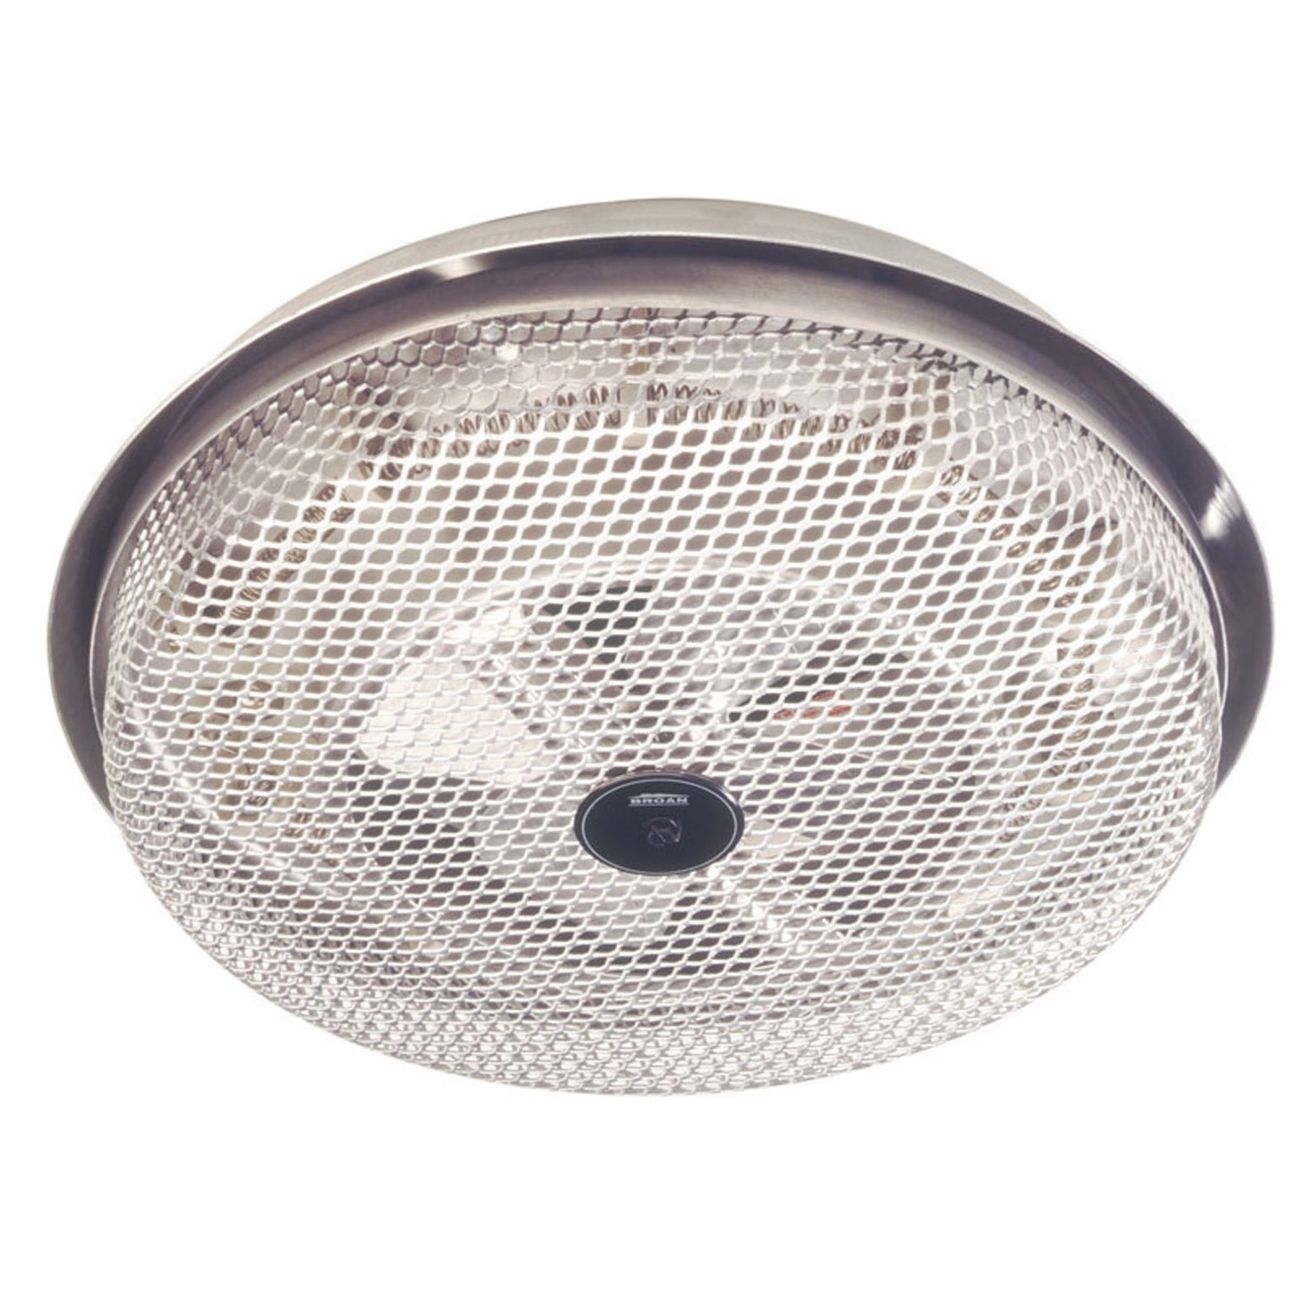 Broan surface mountain ceiling heater 154 bath fans heaters broan surface mountain ceiling heater 154 bath fans heaters aloadofball Image collections